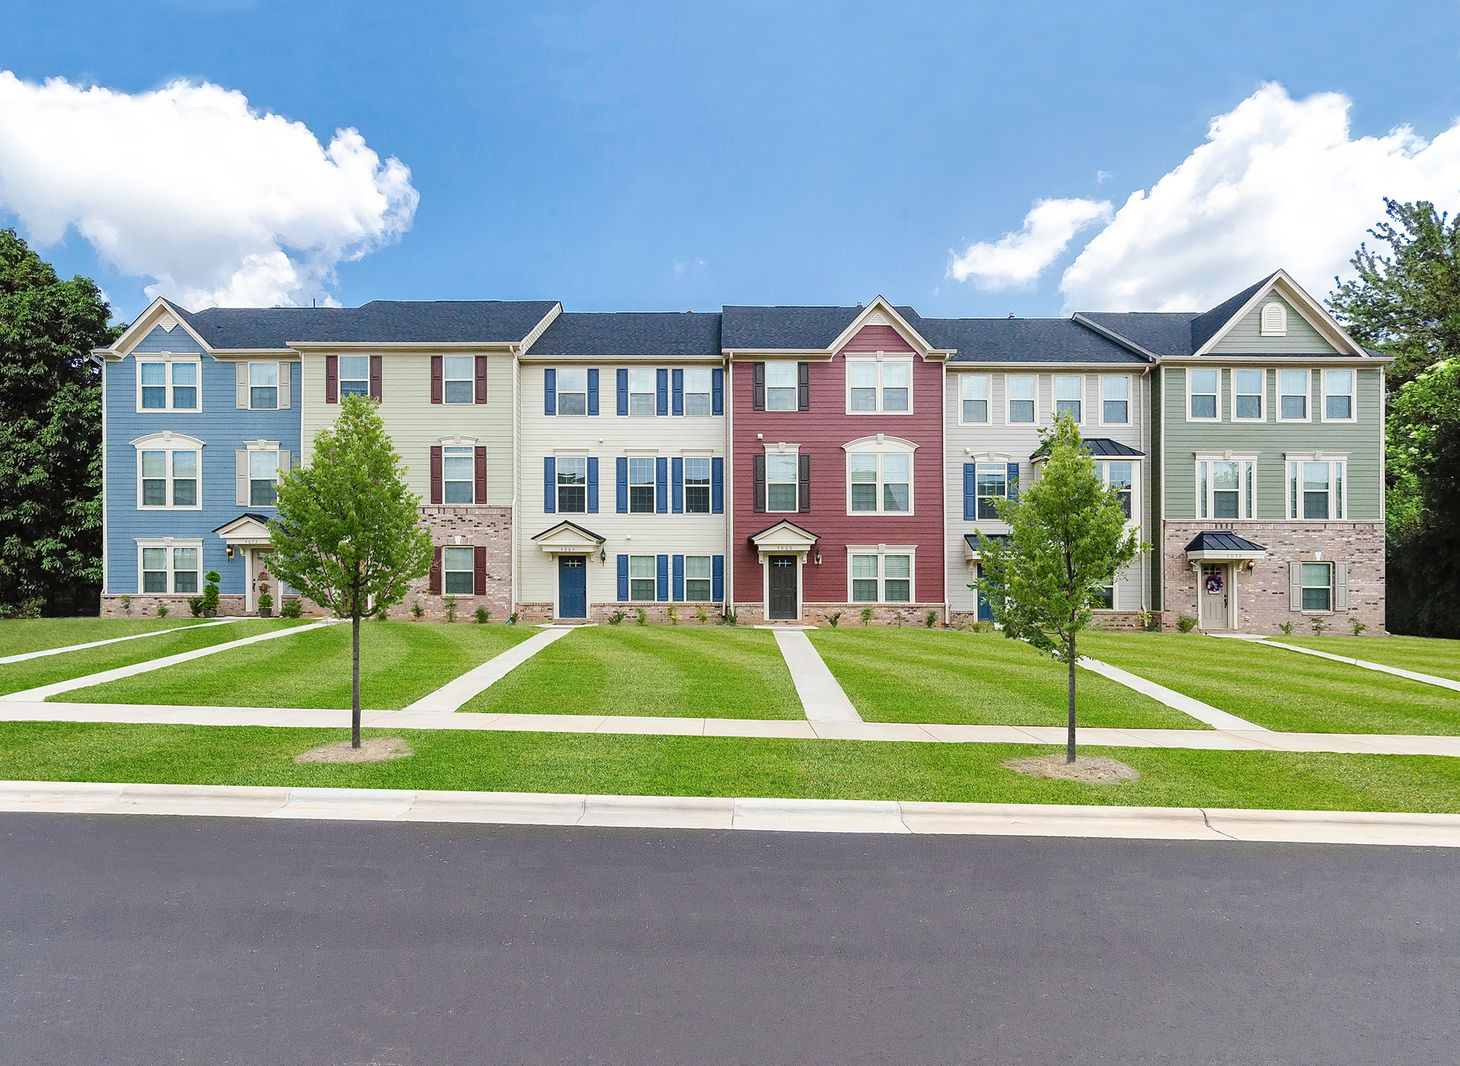 WELCOME TO ANCHOR AT GLASSWORKS:New townhomes with a 5-year tax abatement! Spacious floorplan in an established community within 2 miles of the GSP & 13 miles of MetroPark.. Click here to schedule an appointment.Photograph (1)